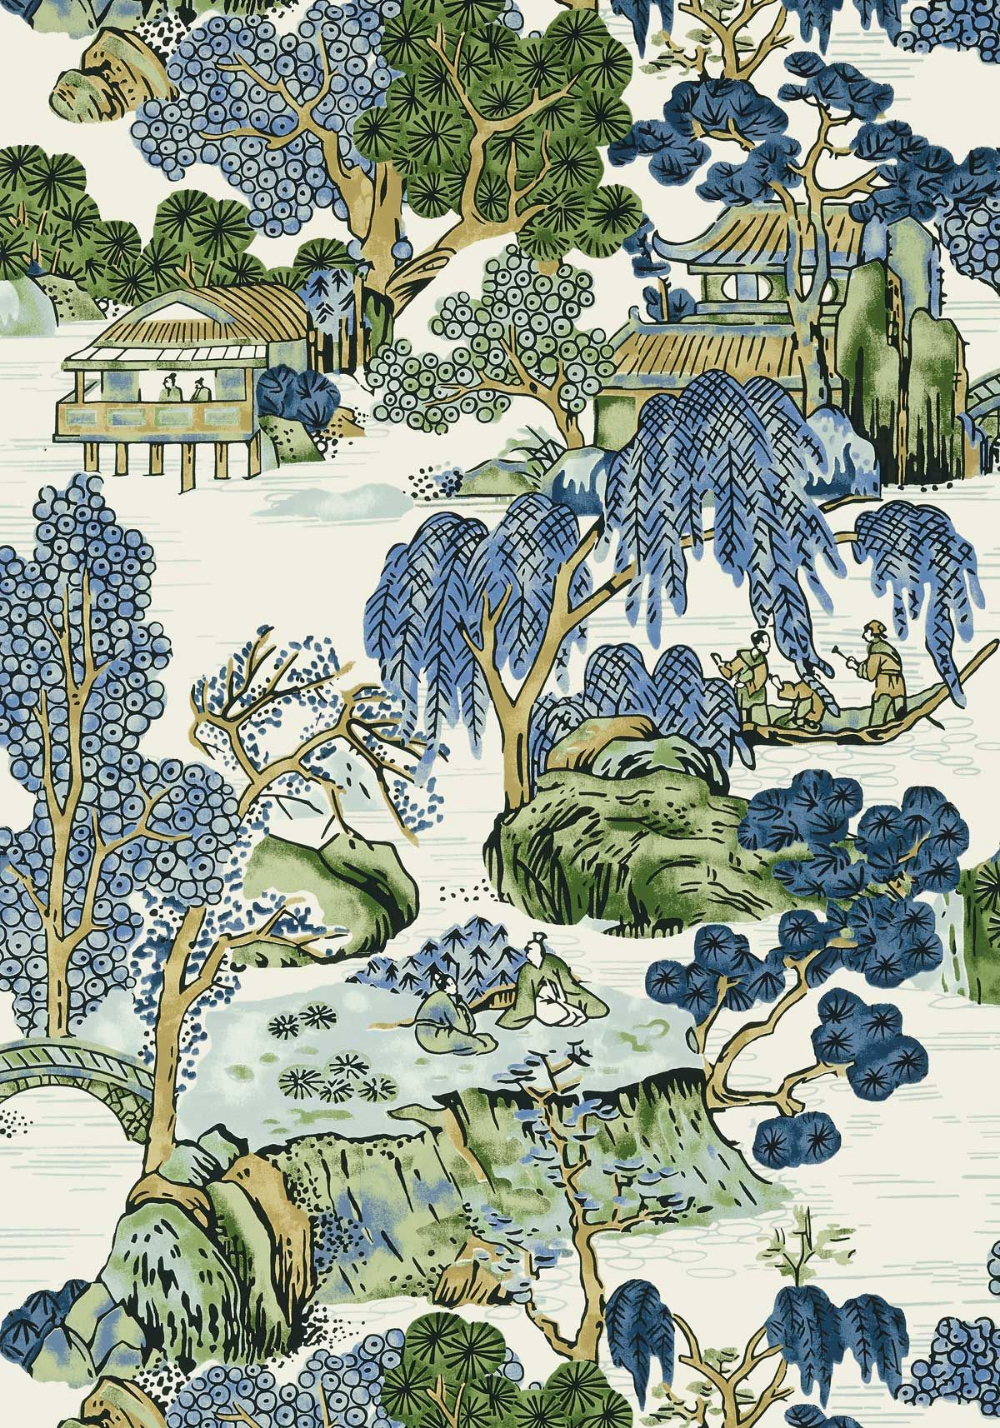 Asian Scenic Wallpaper   Scenic Wallpaper, Thibaut Wallpaper Within Most Popular Blended Fabric Hidden Garden Chinoiserie Wall Hangings With Rod (View 16 of 20)